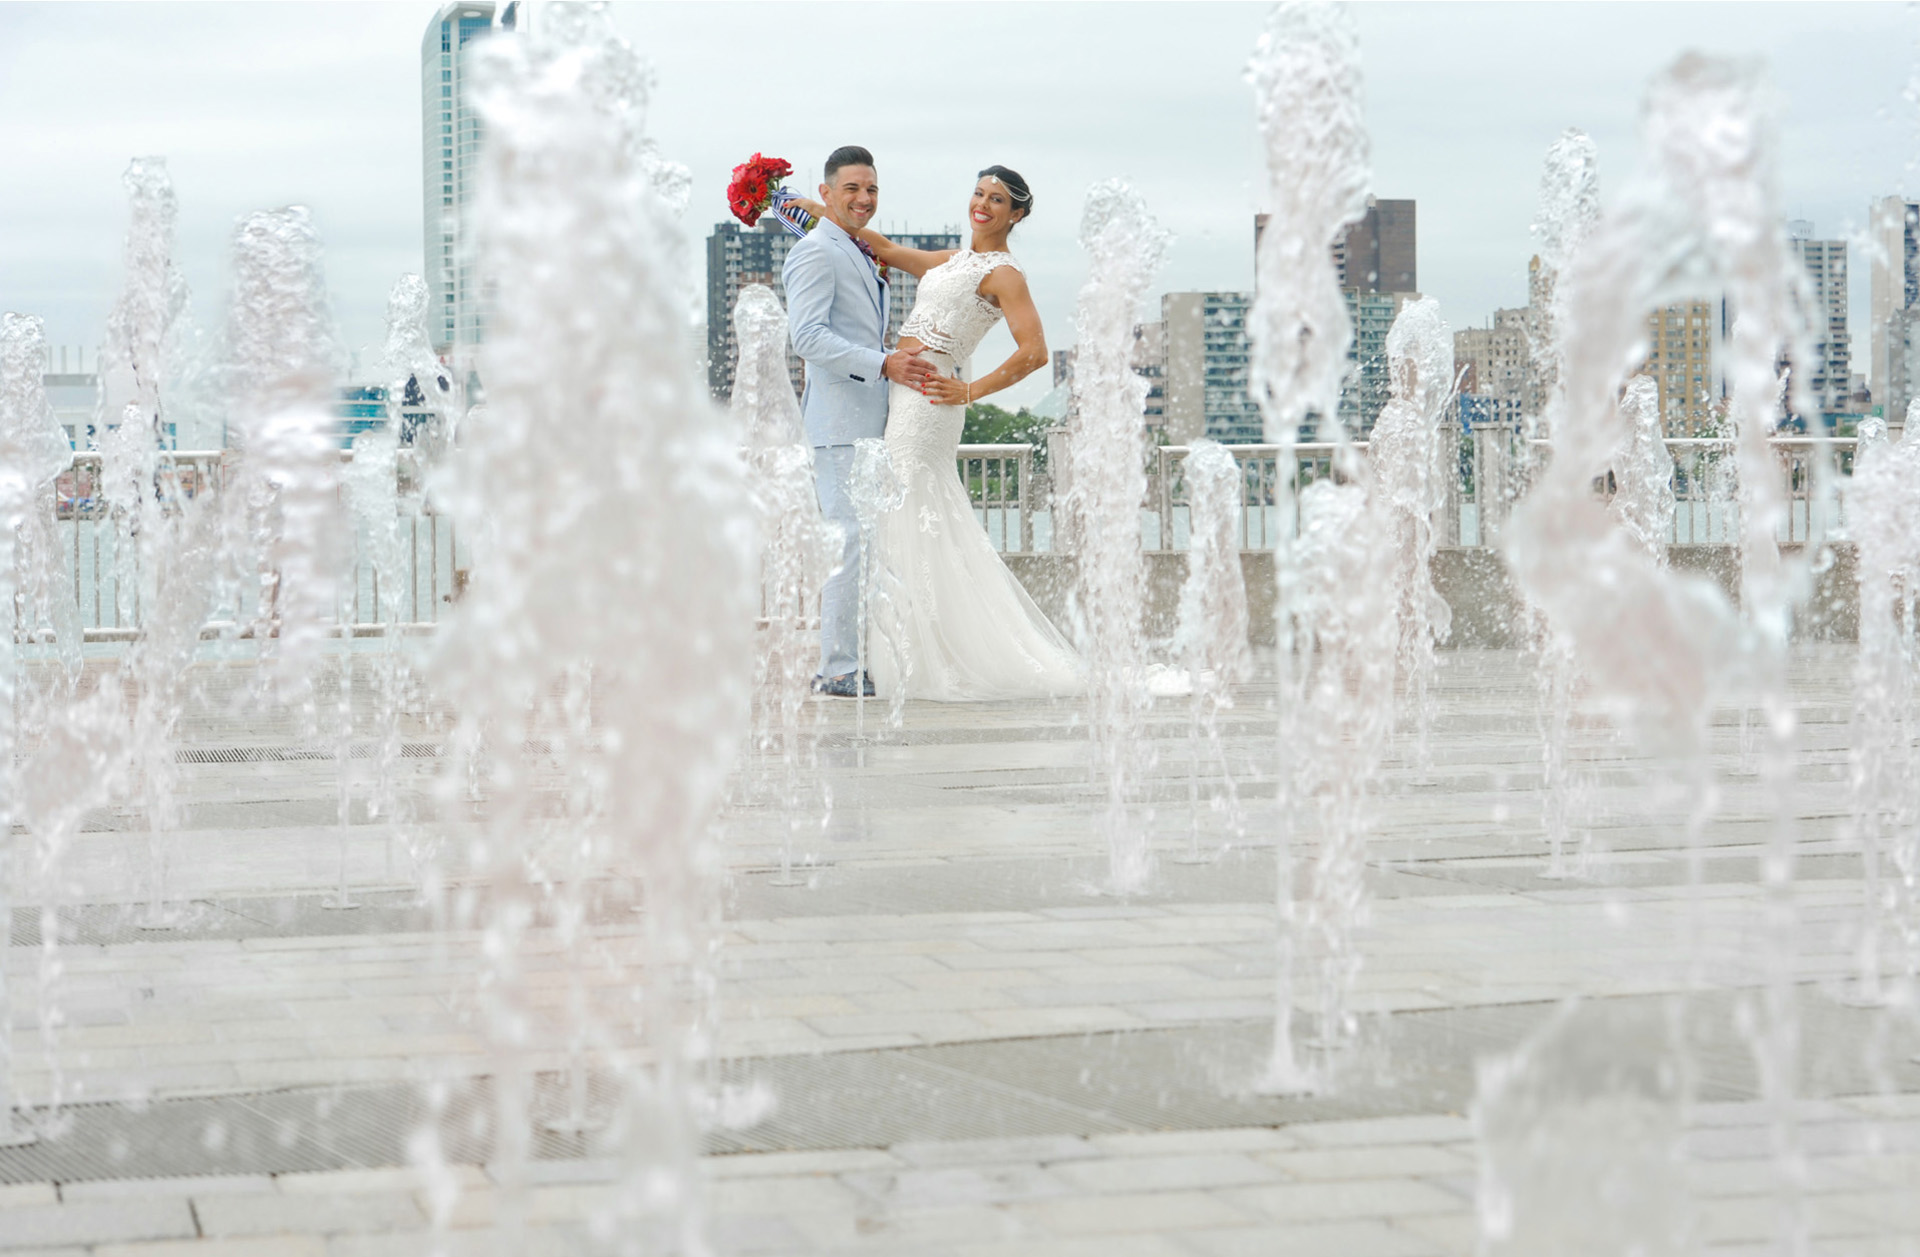 The bride and groom pose along the waterfront's spraypark before their wedding in Detroit, Michigan.